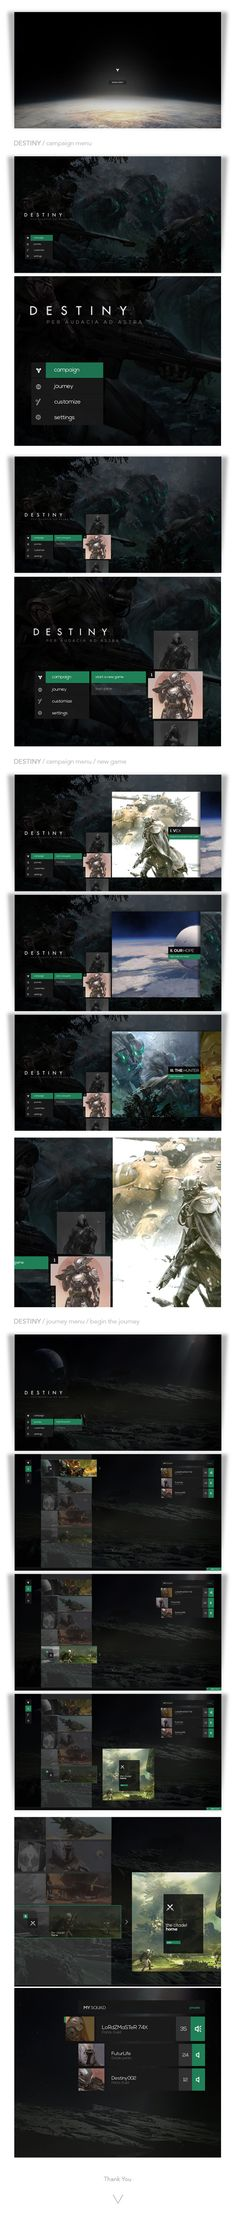 http://www.behance.net/gallery/(-GUI-)-Destiny-User_Interface/7421711